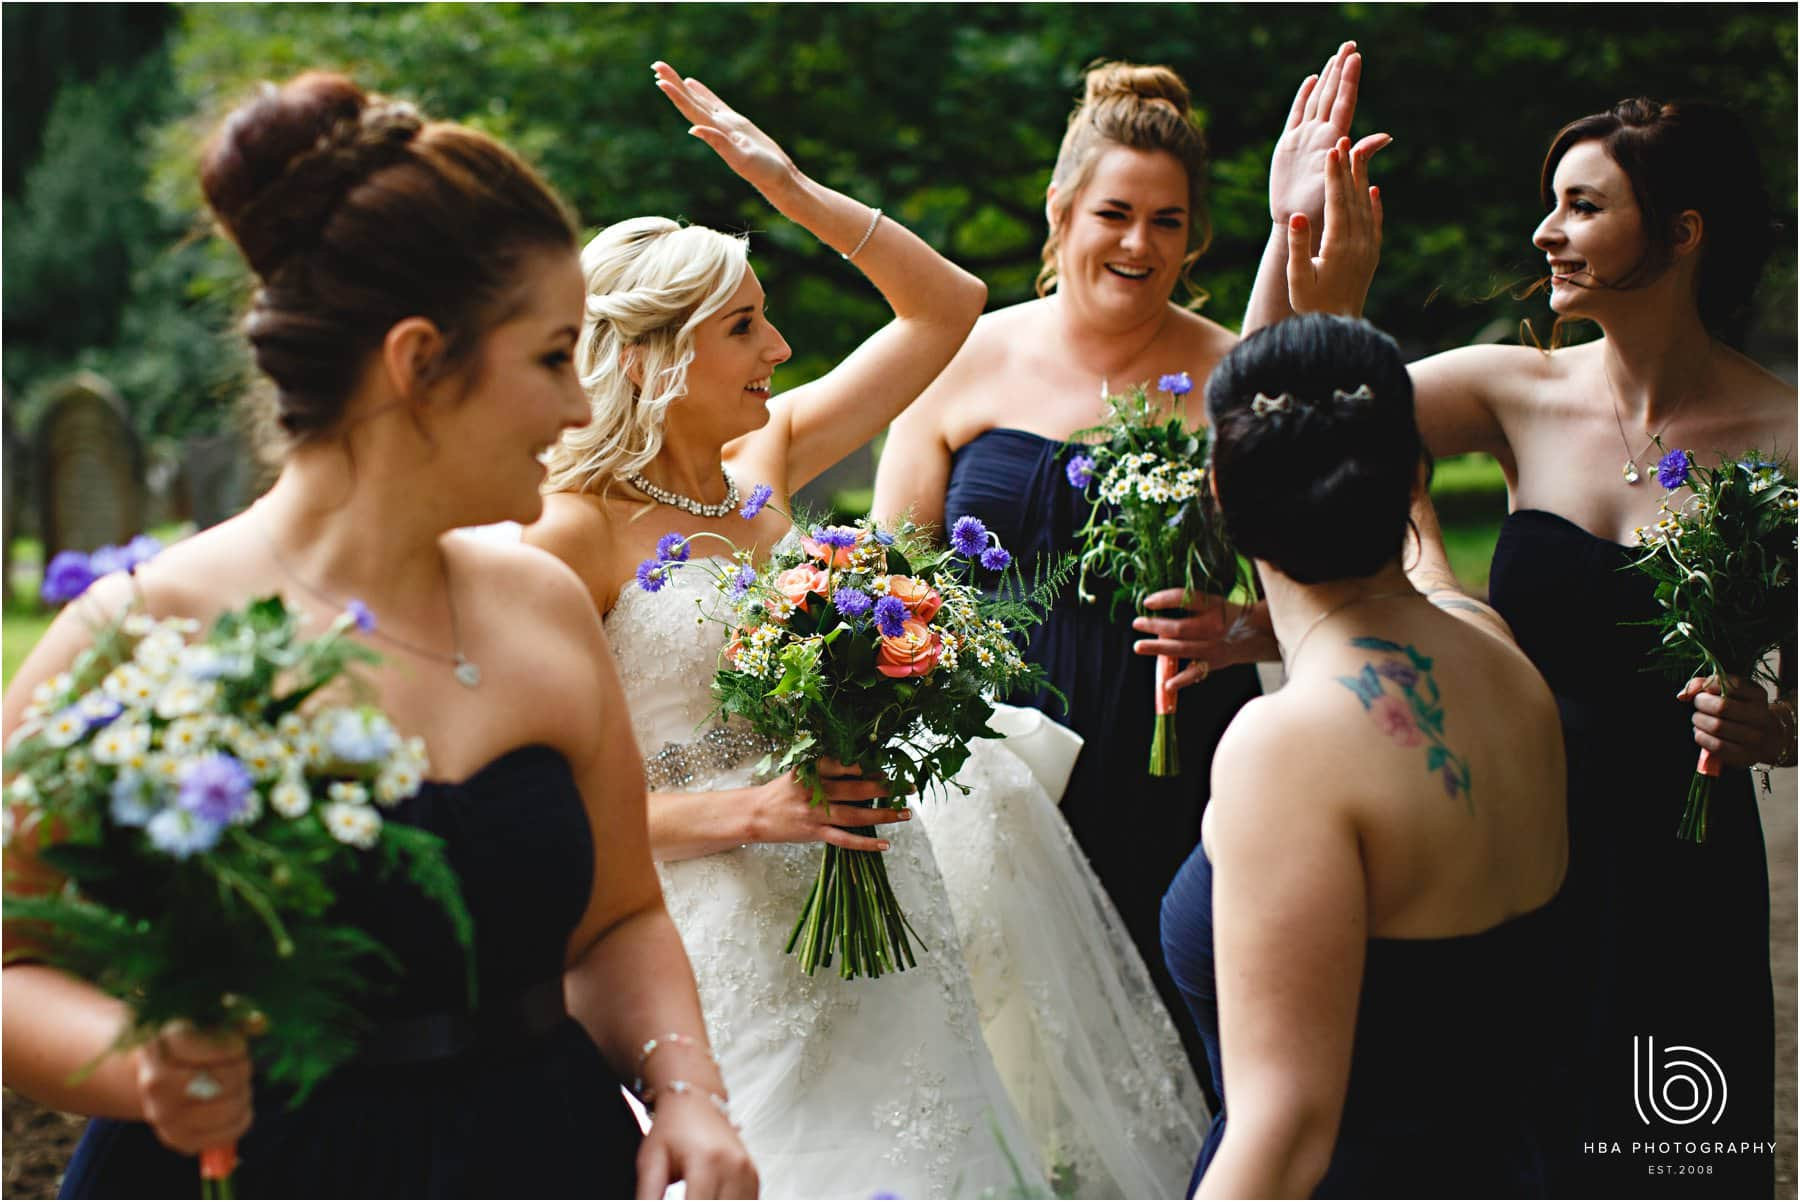 the bride & bridesmaids high fiving